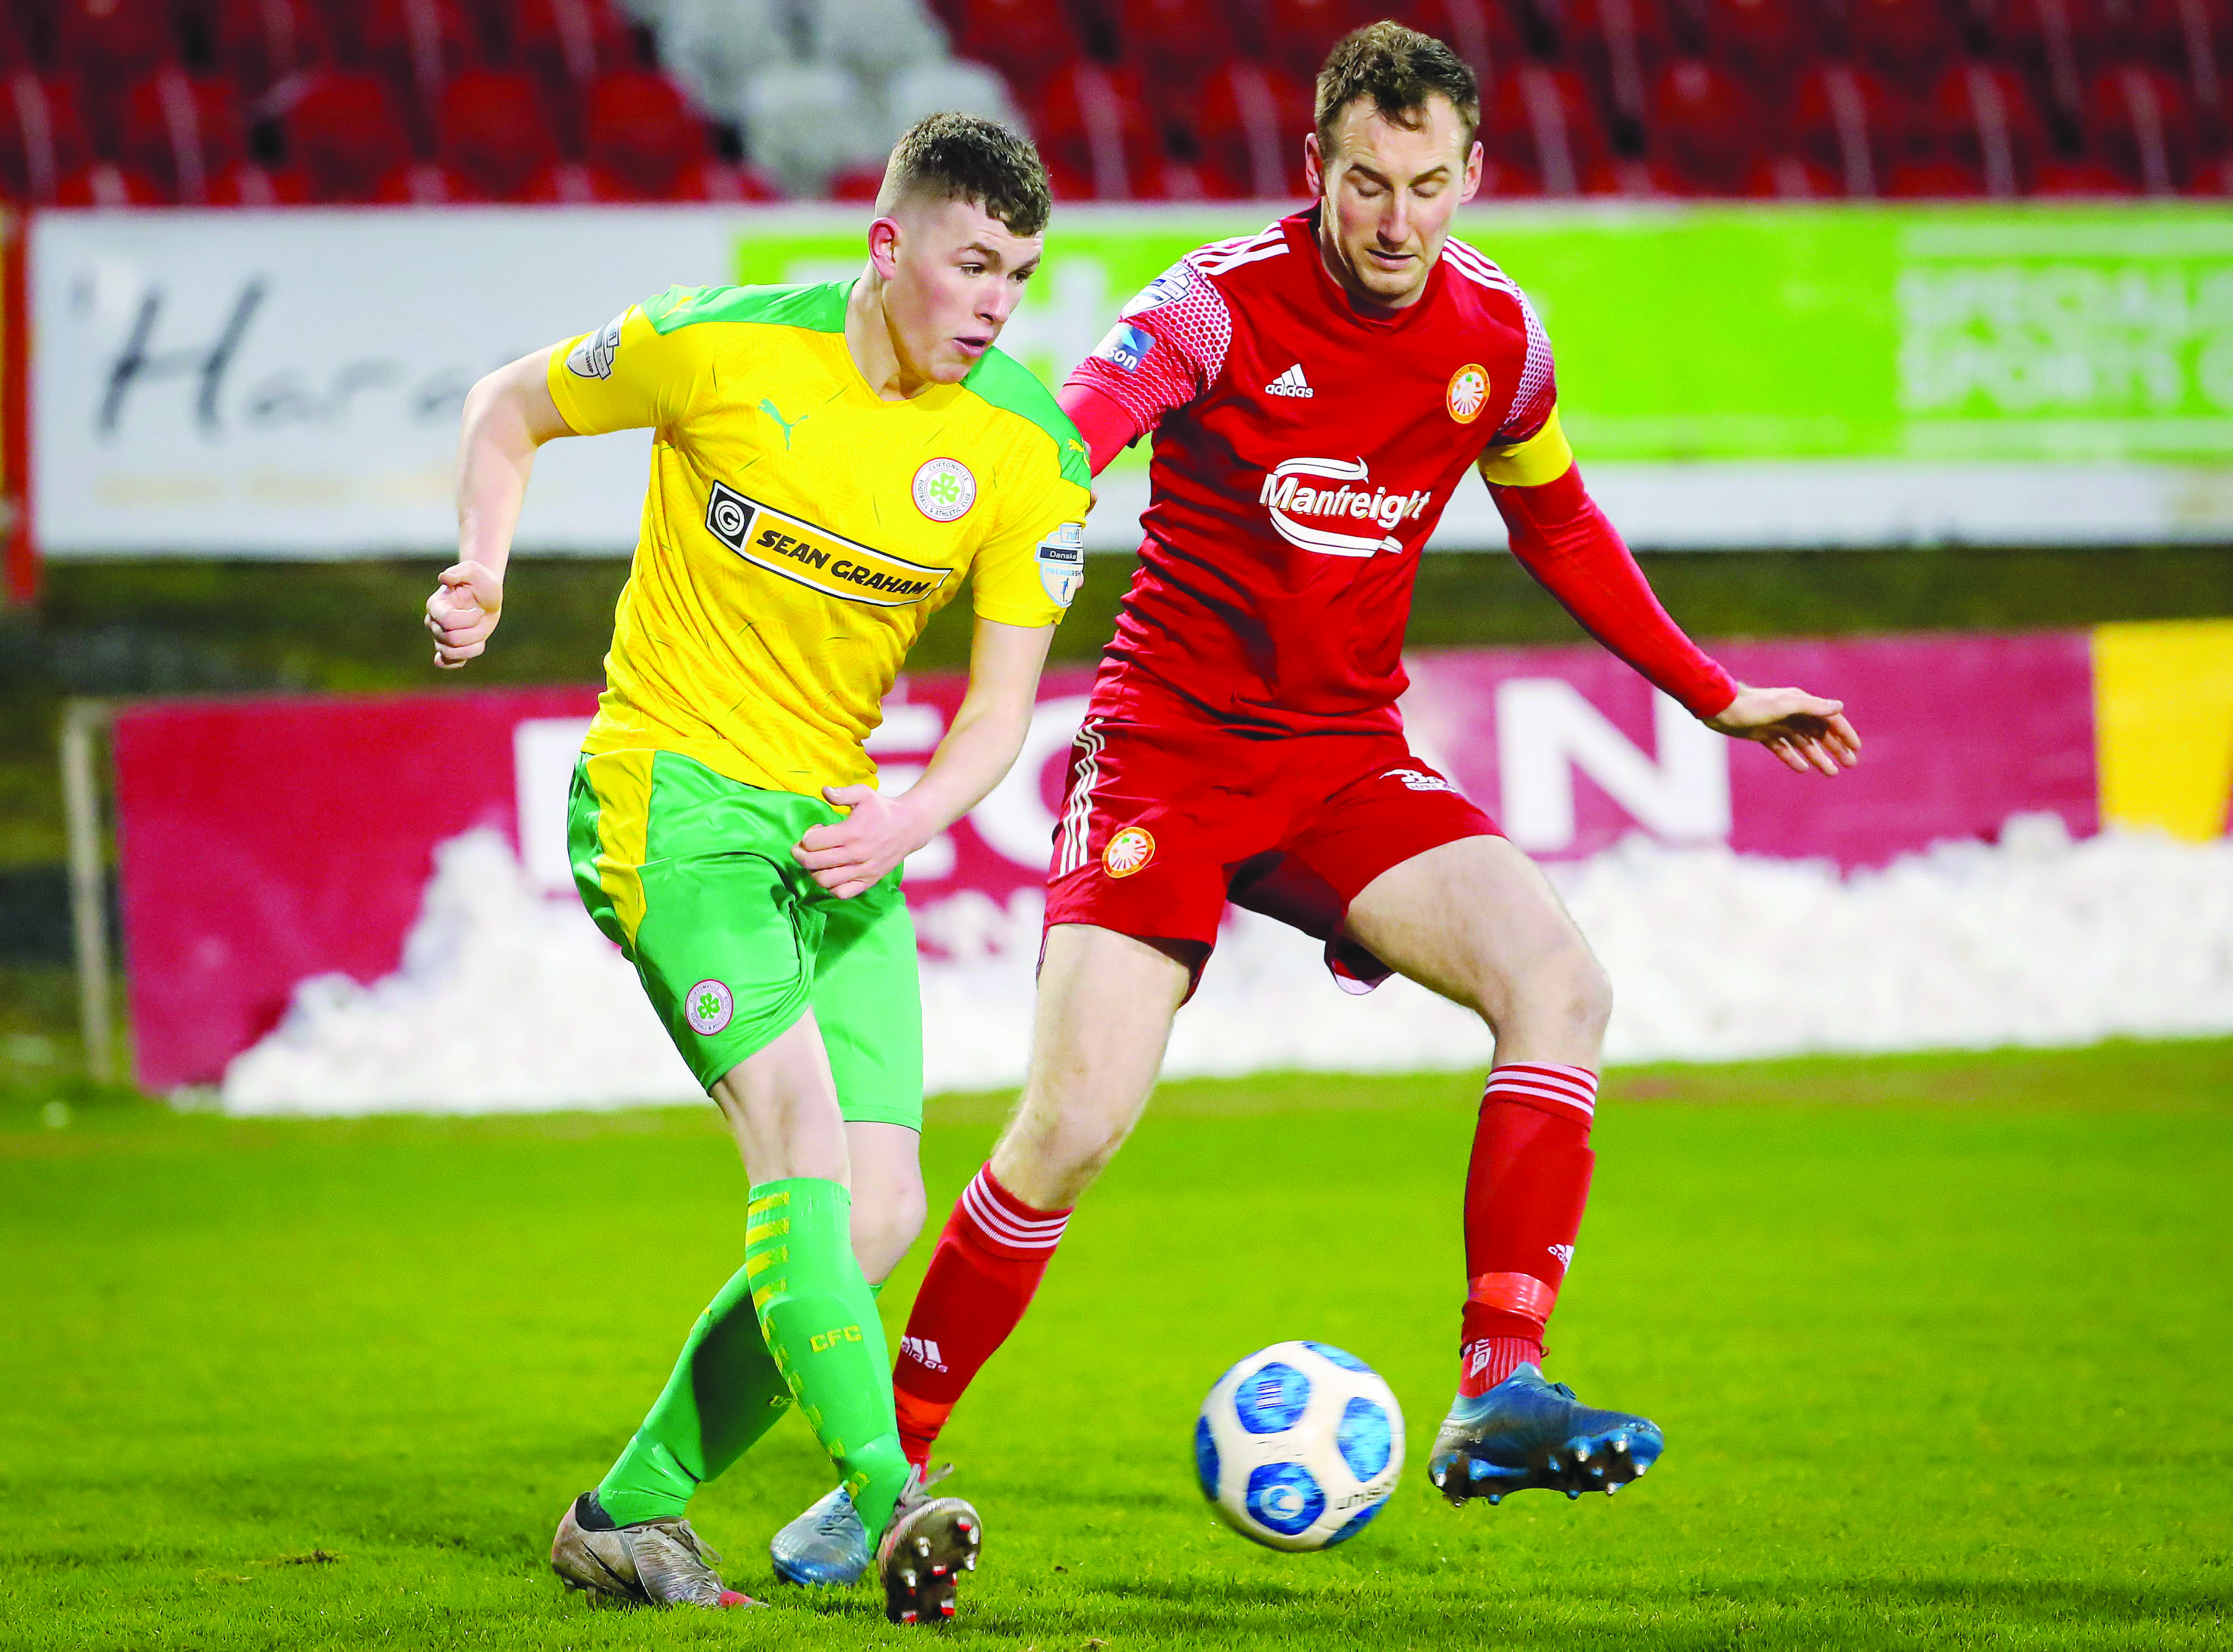 Portadown's Paul Finnegan closes in on Aaron Donnelly during a 1-1 draw between the teams back in February